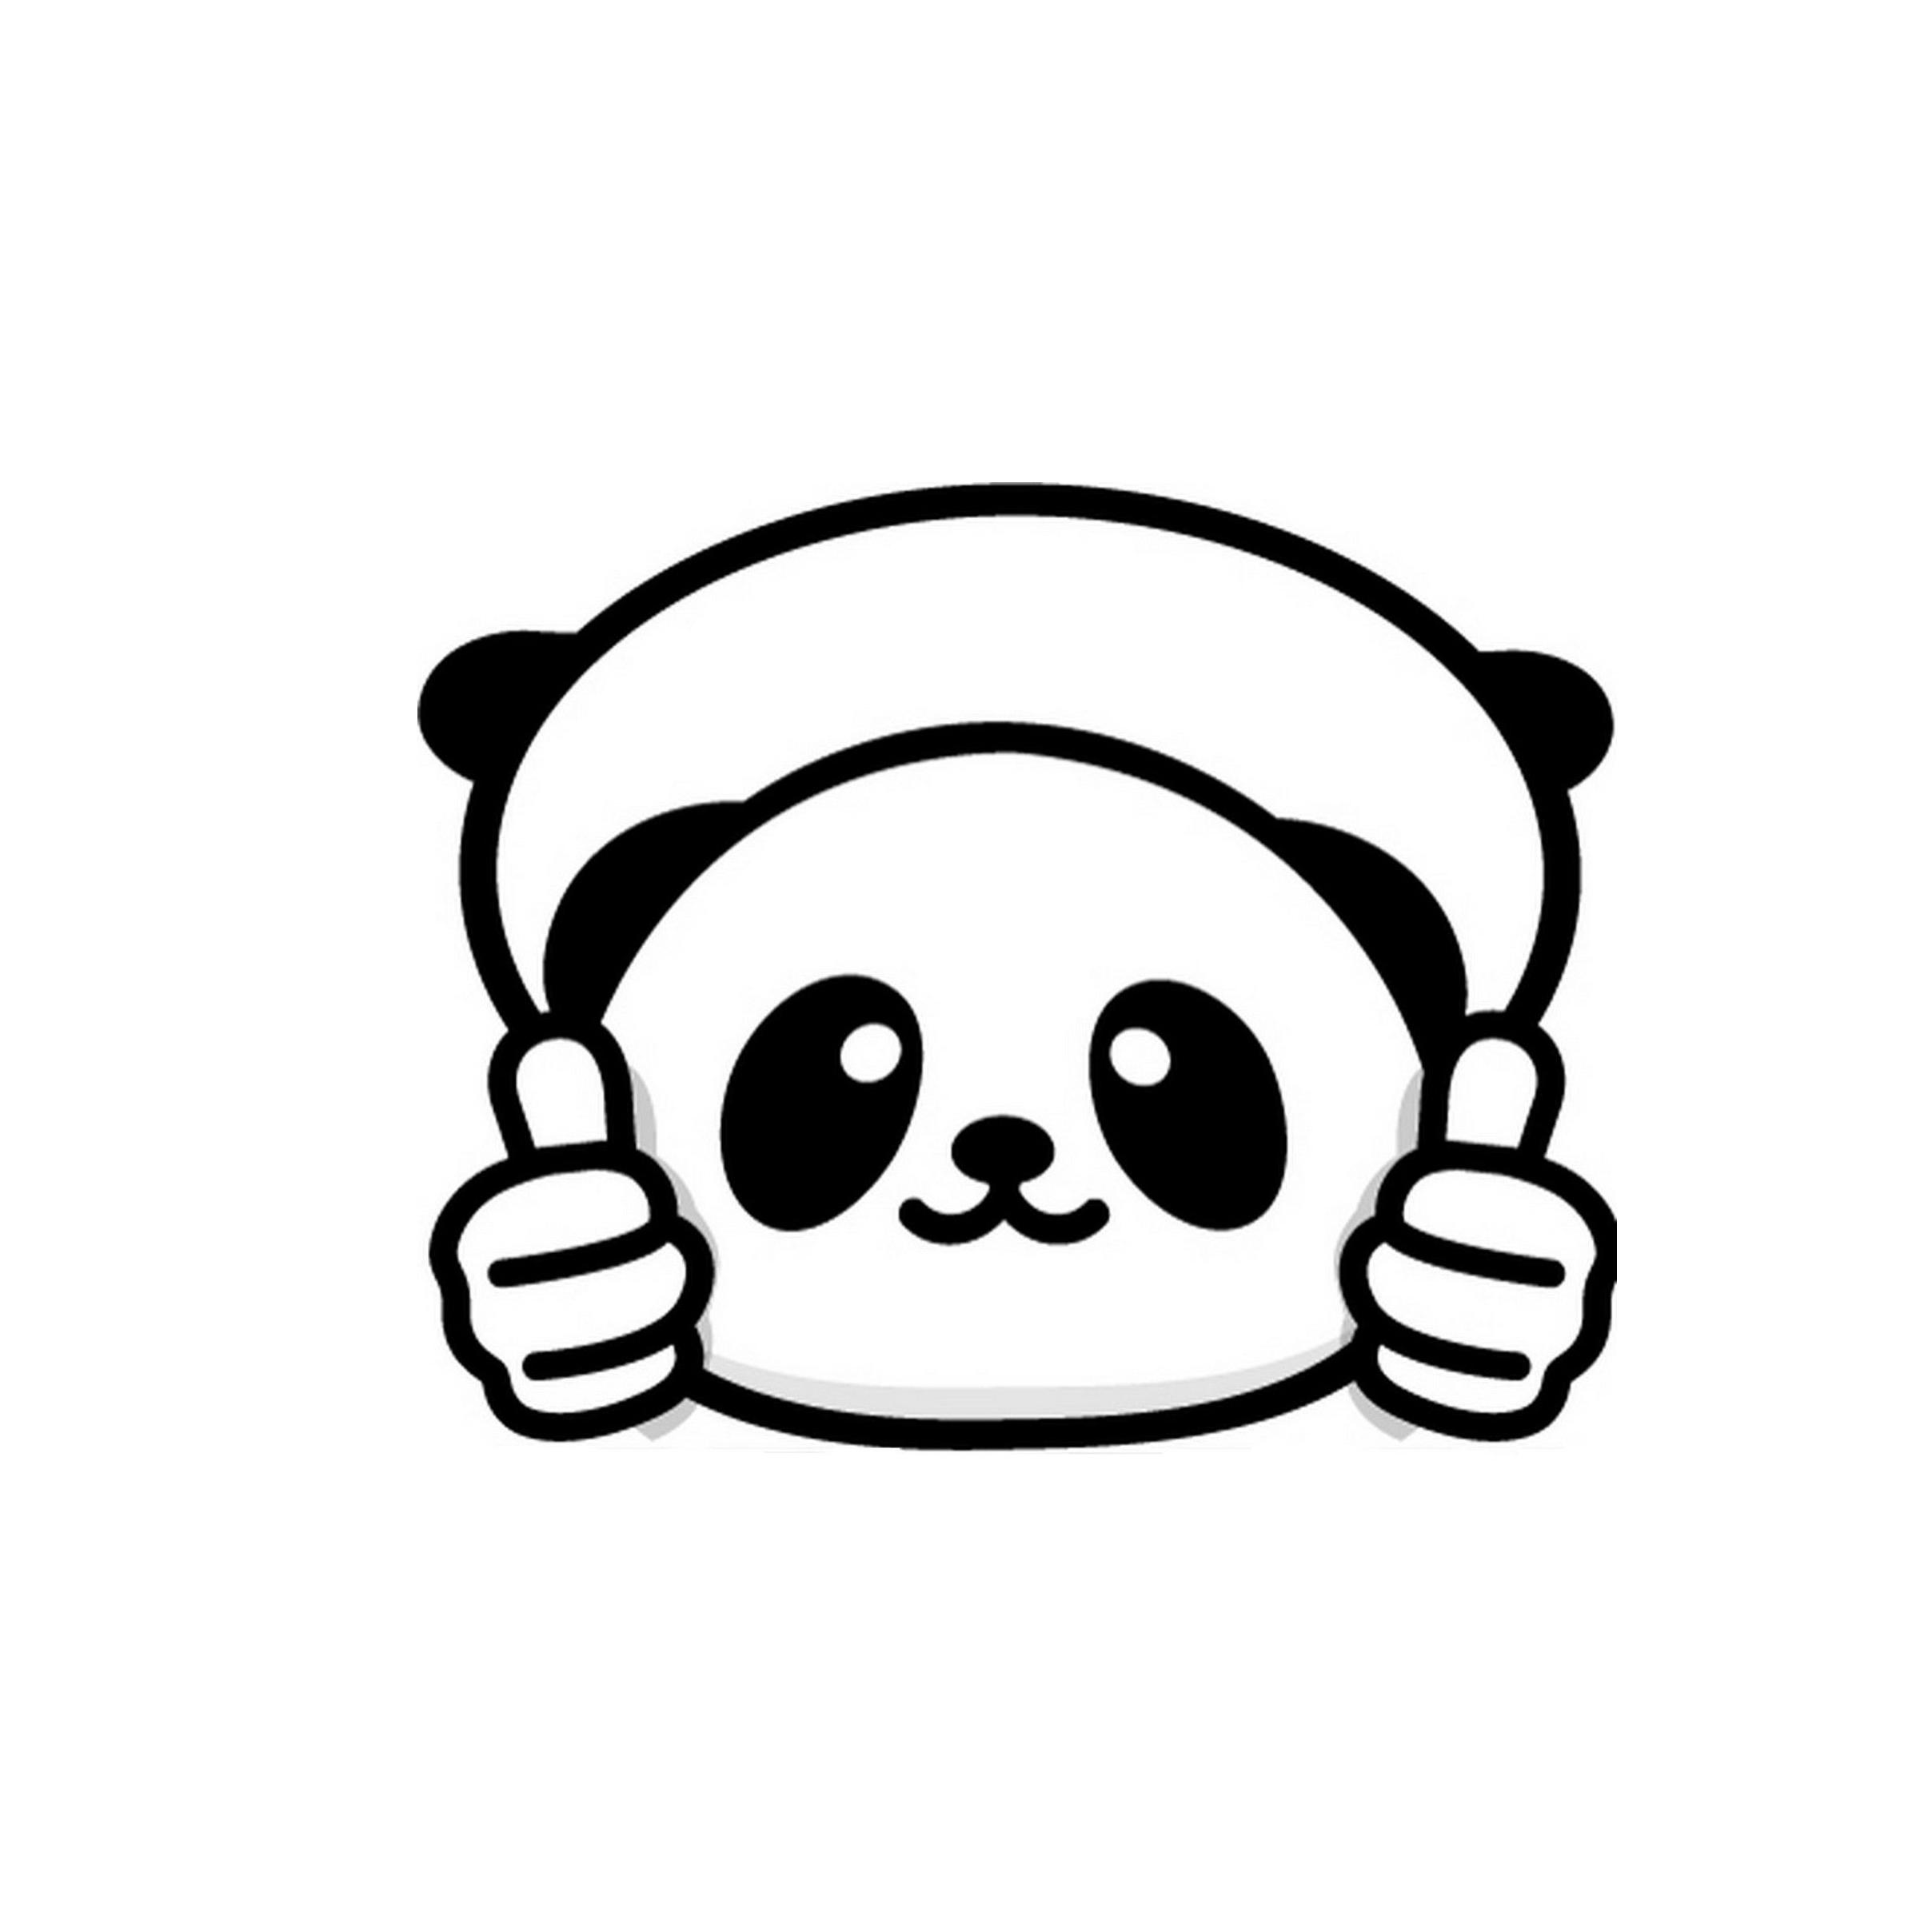 2019 panda sticker vinyl decal for car and others cute and interesting fashion sticker decals from xymy787 2 92 dhgate com